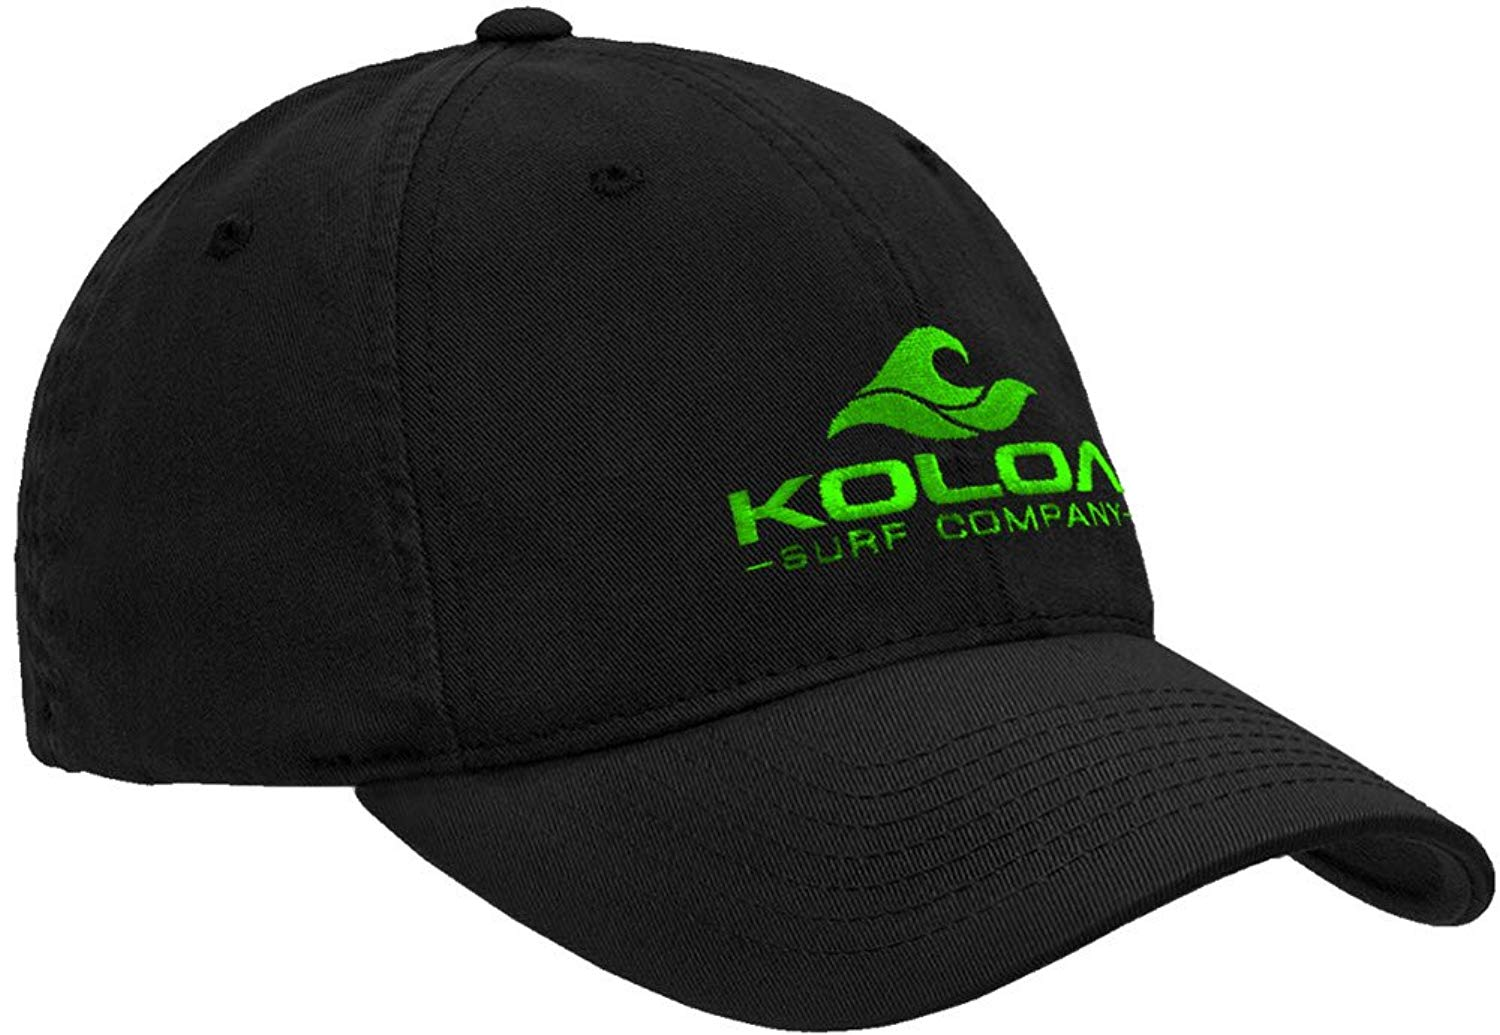 36977ee1b63 Get Quotations · Koloa Surf Wave Logo Unstructured Soft Hats. Low Profile  Adjustable Caps